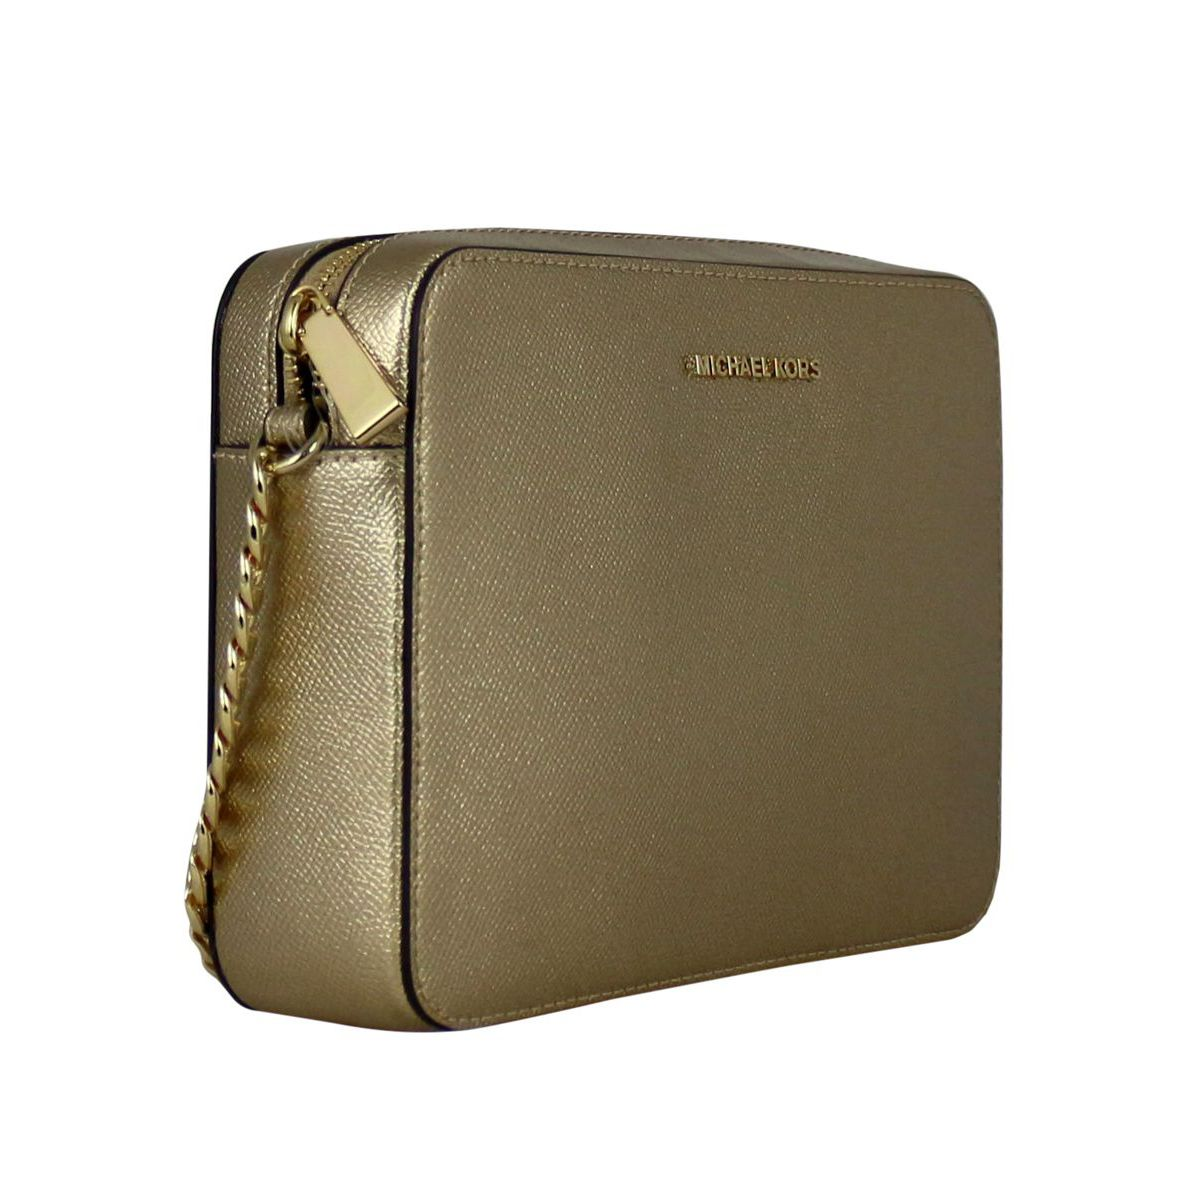 f1b56e260b0640 ... Shoulder bag in laminated leather with logo Gold Michael Kors